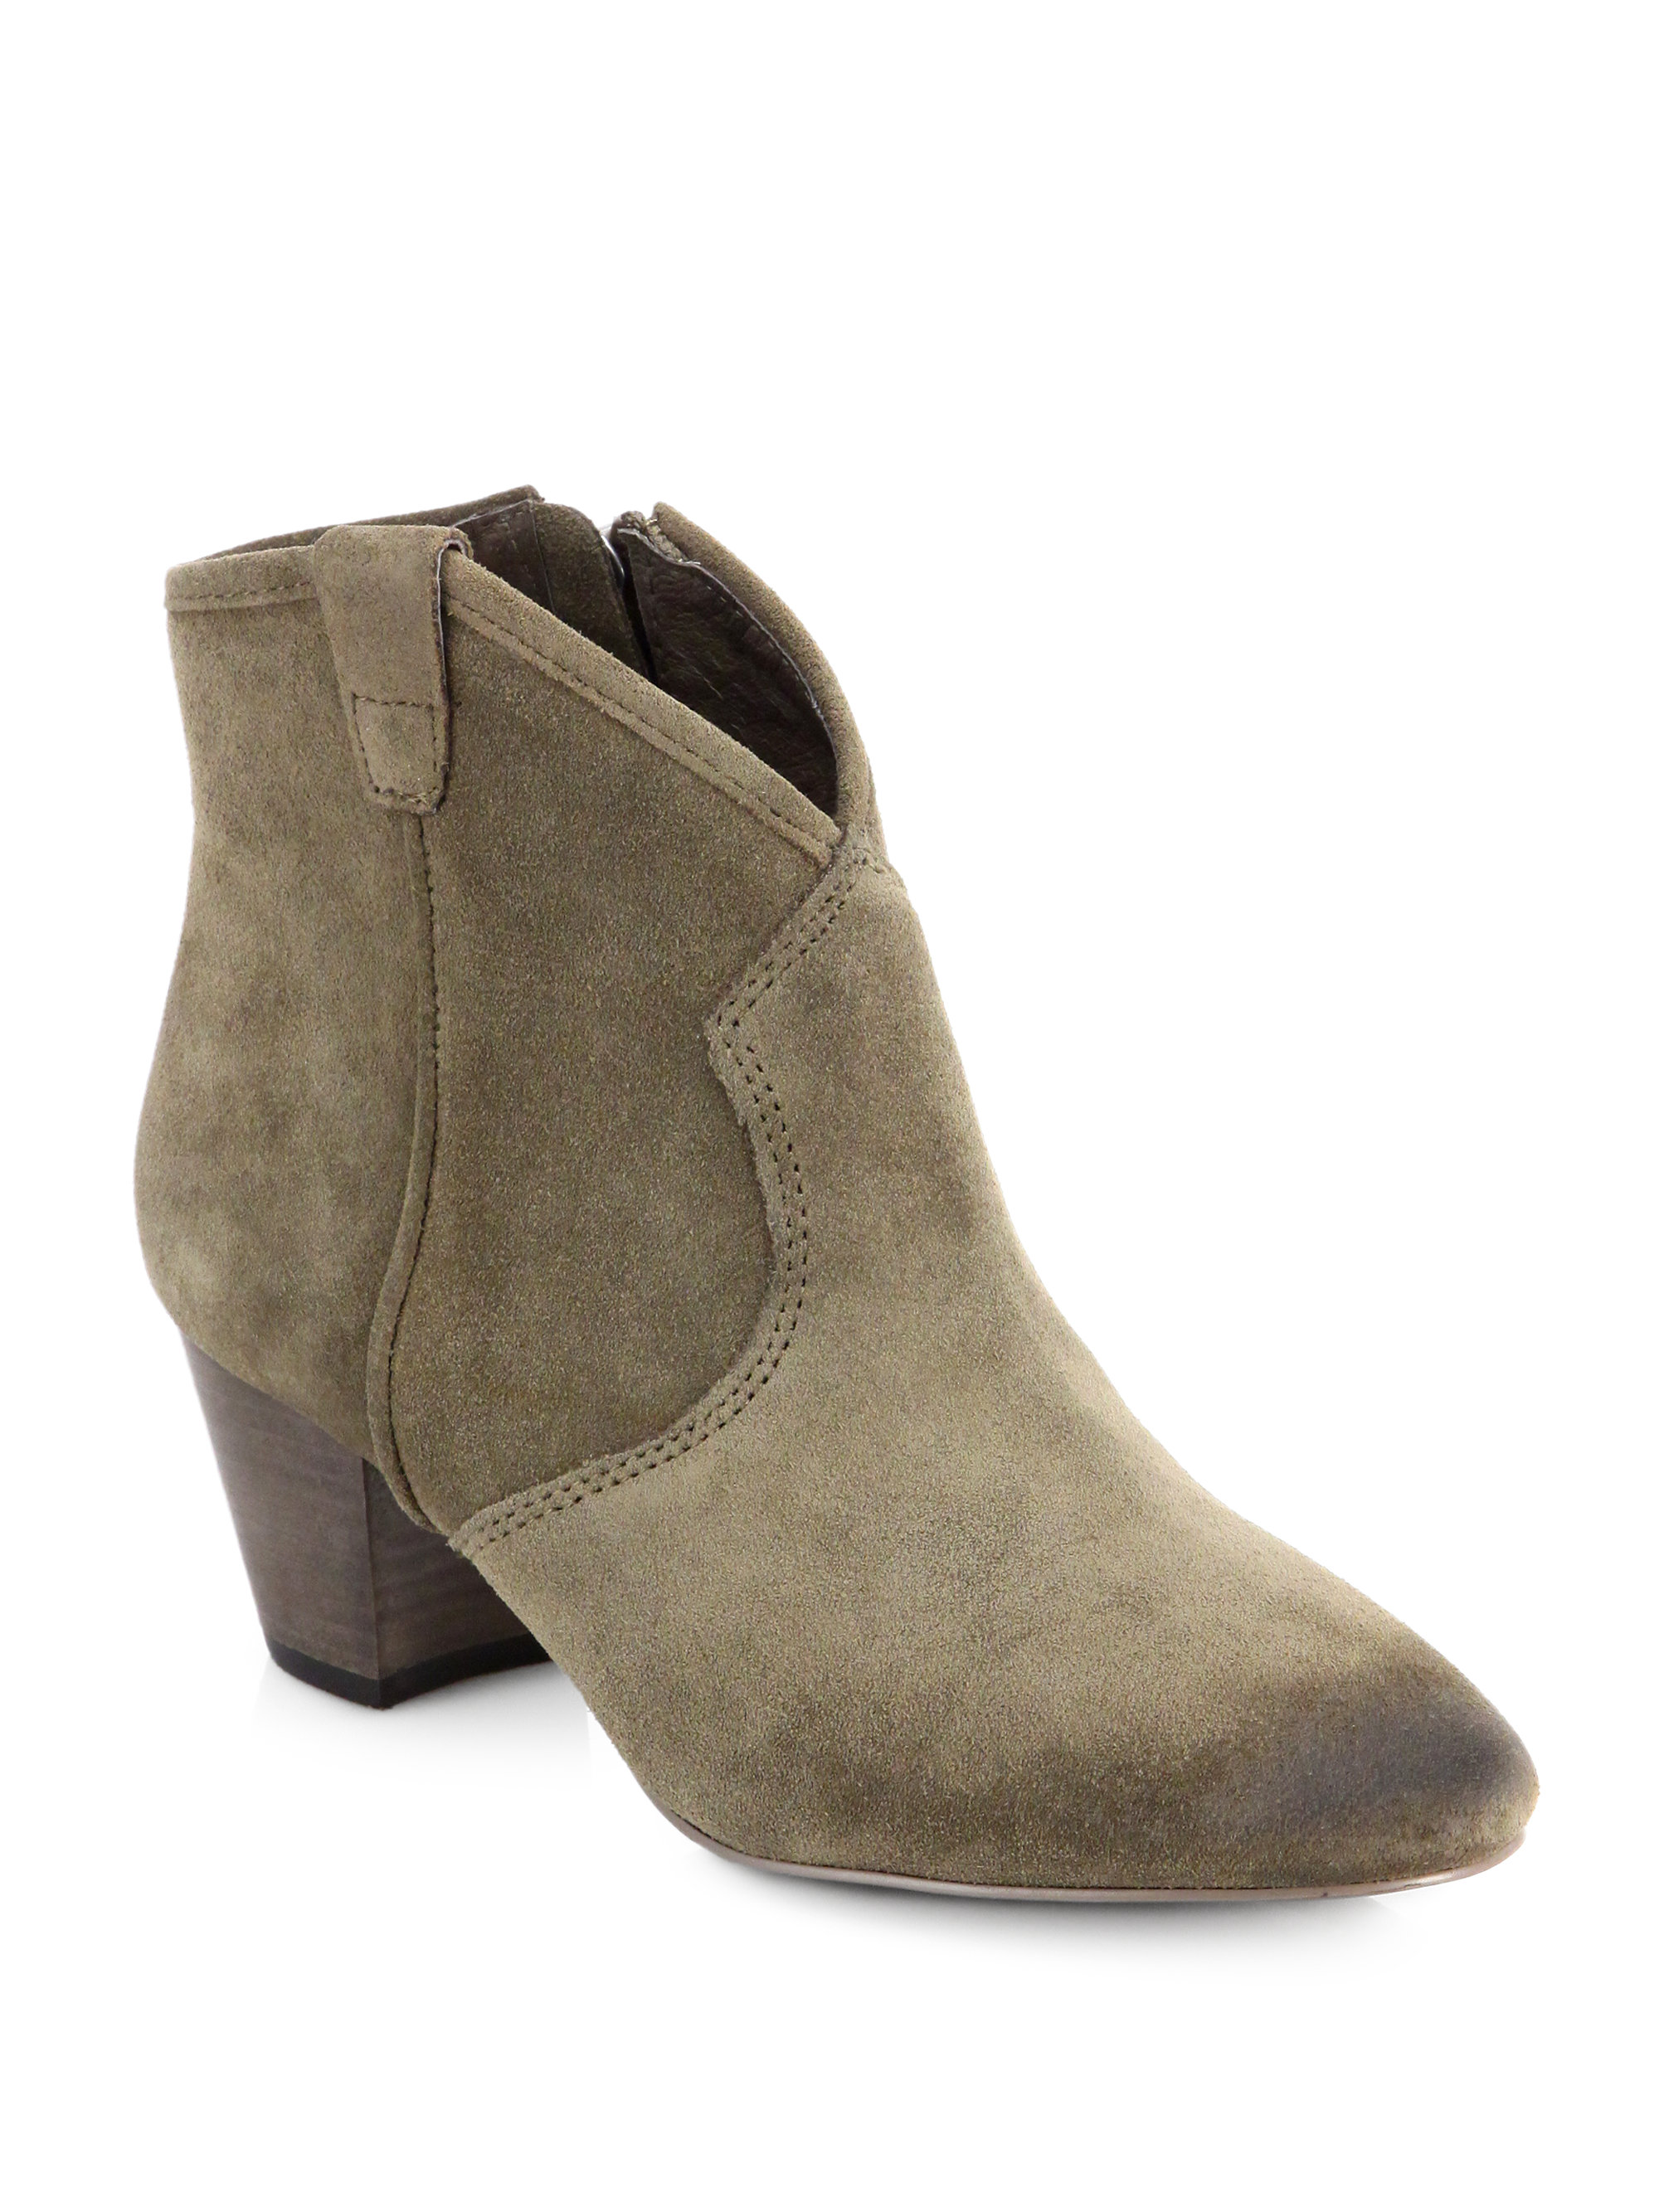 cb0ff8812e1 Lyst - Ash Spiral Suede Ankle Boots in Brown